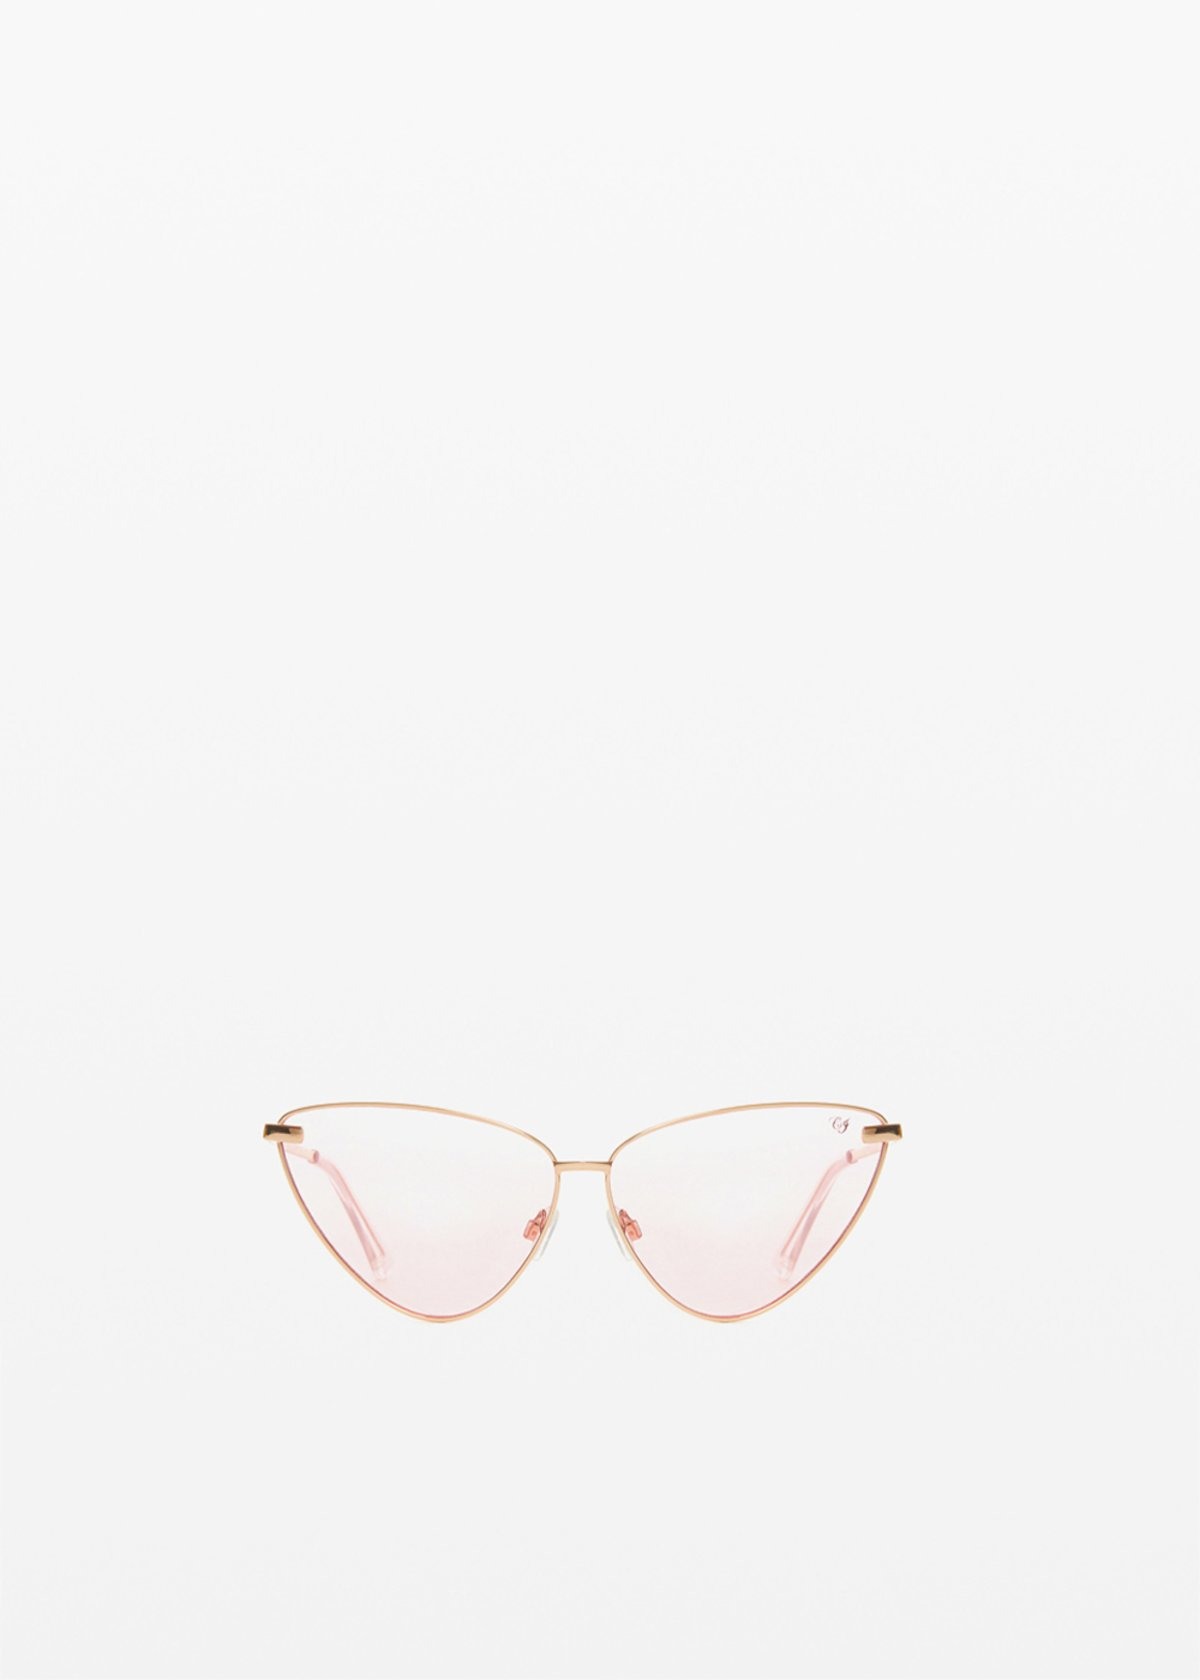 Cat-eye sunglasses SR 2183